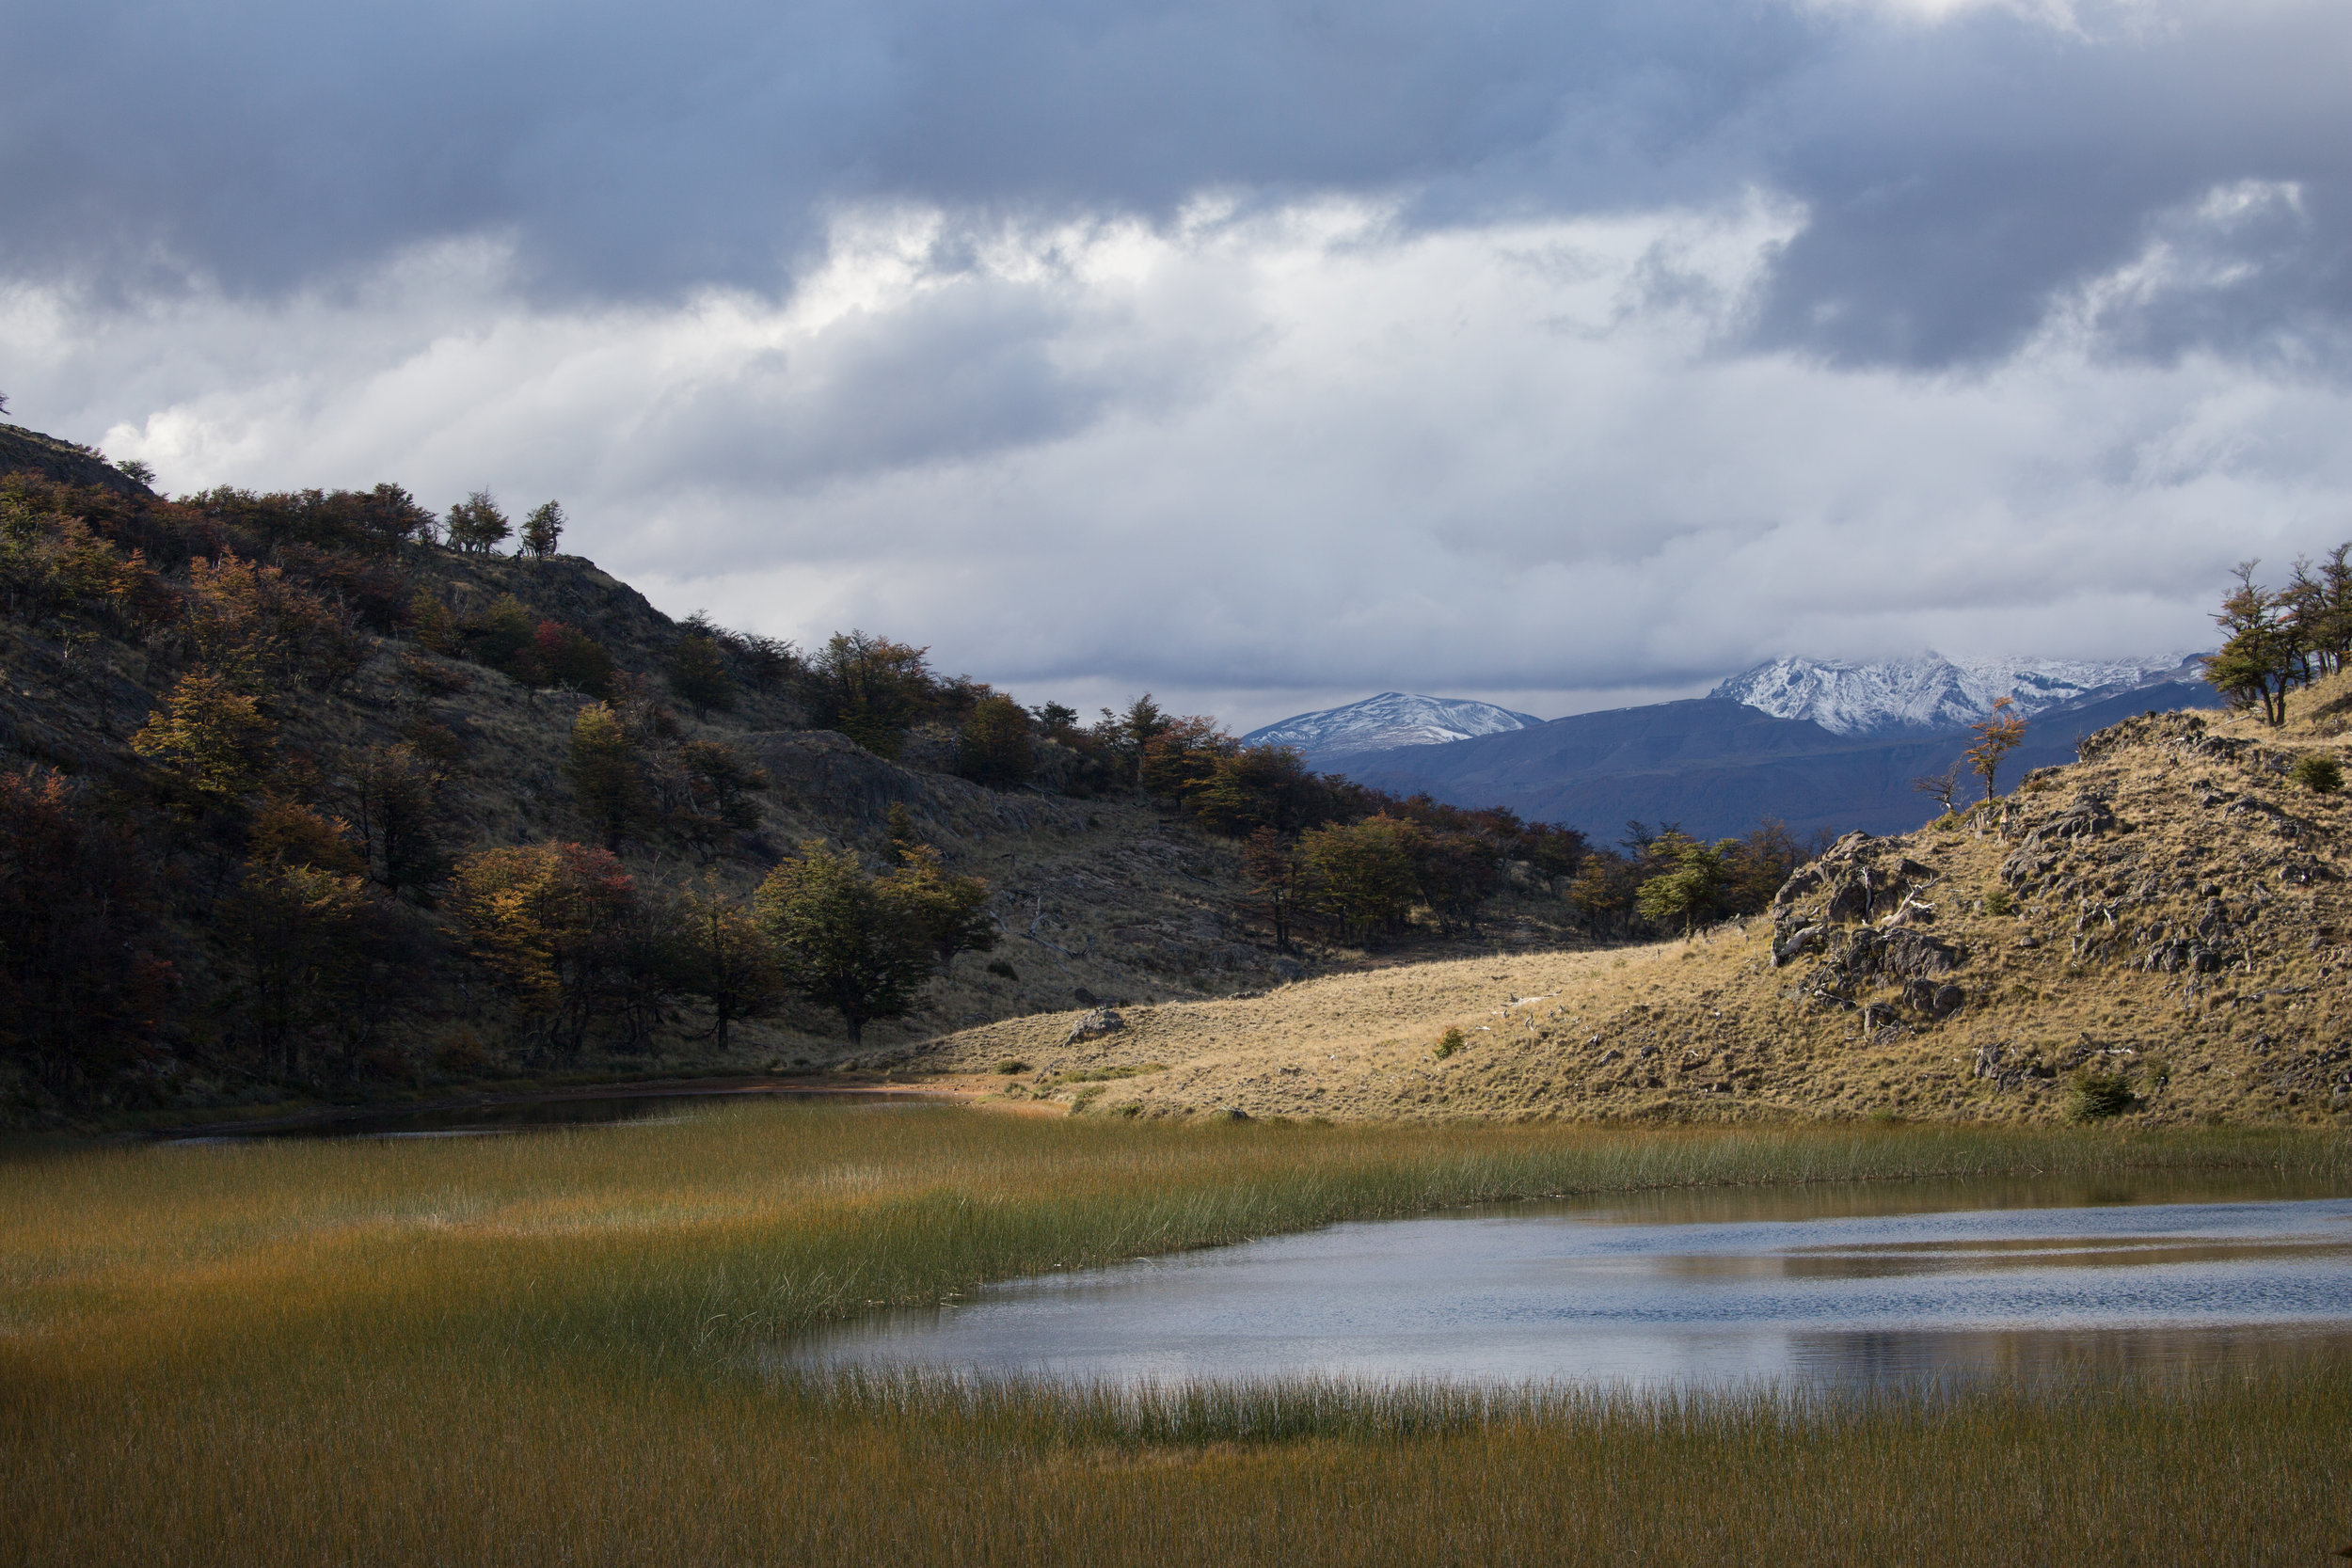 One of the many views along the Lagunas Altas Trail -